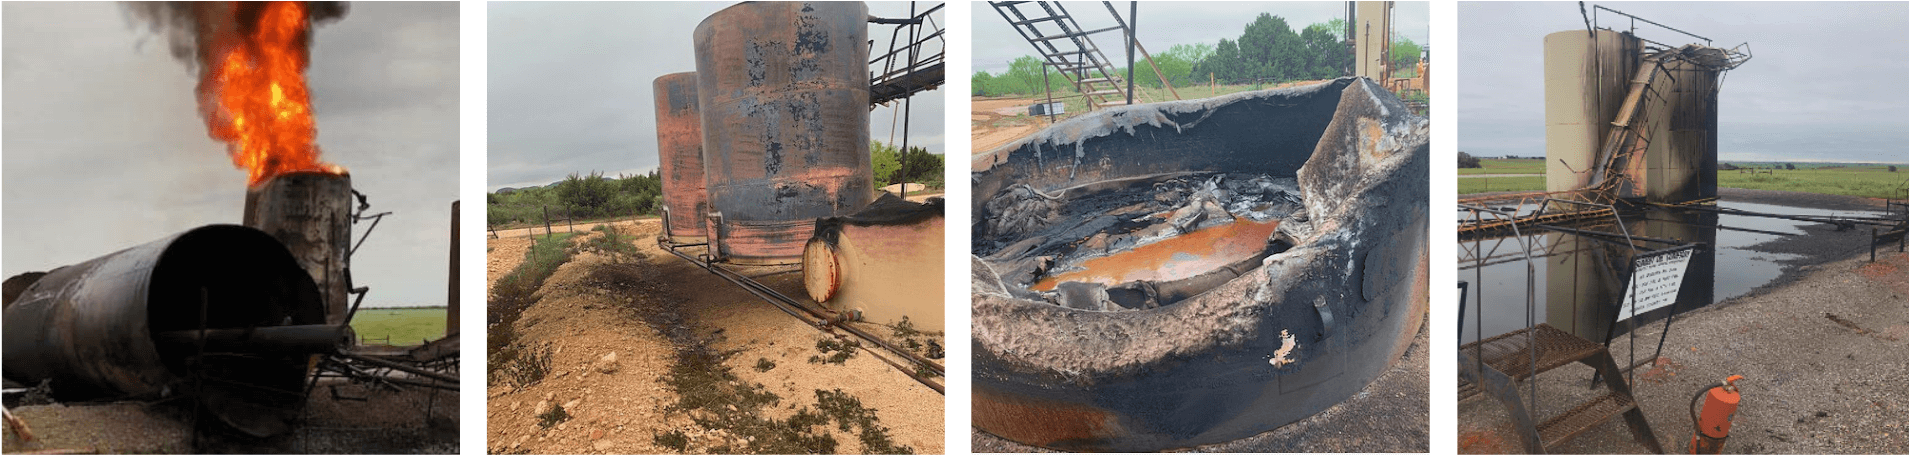 lightning strikes at oilfield production site